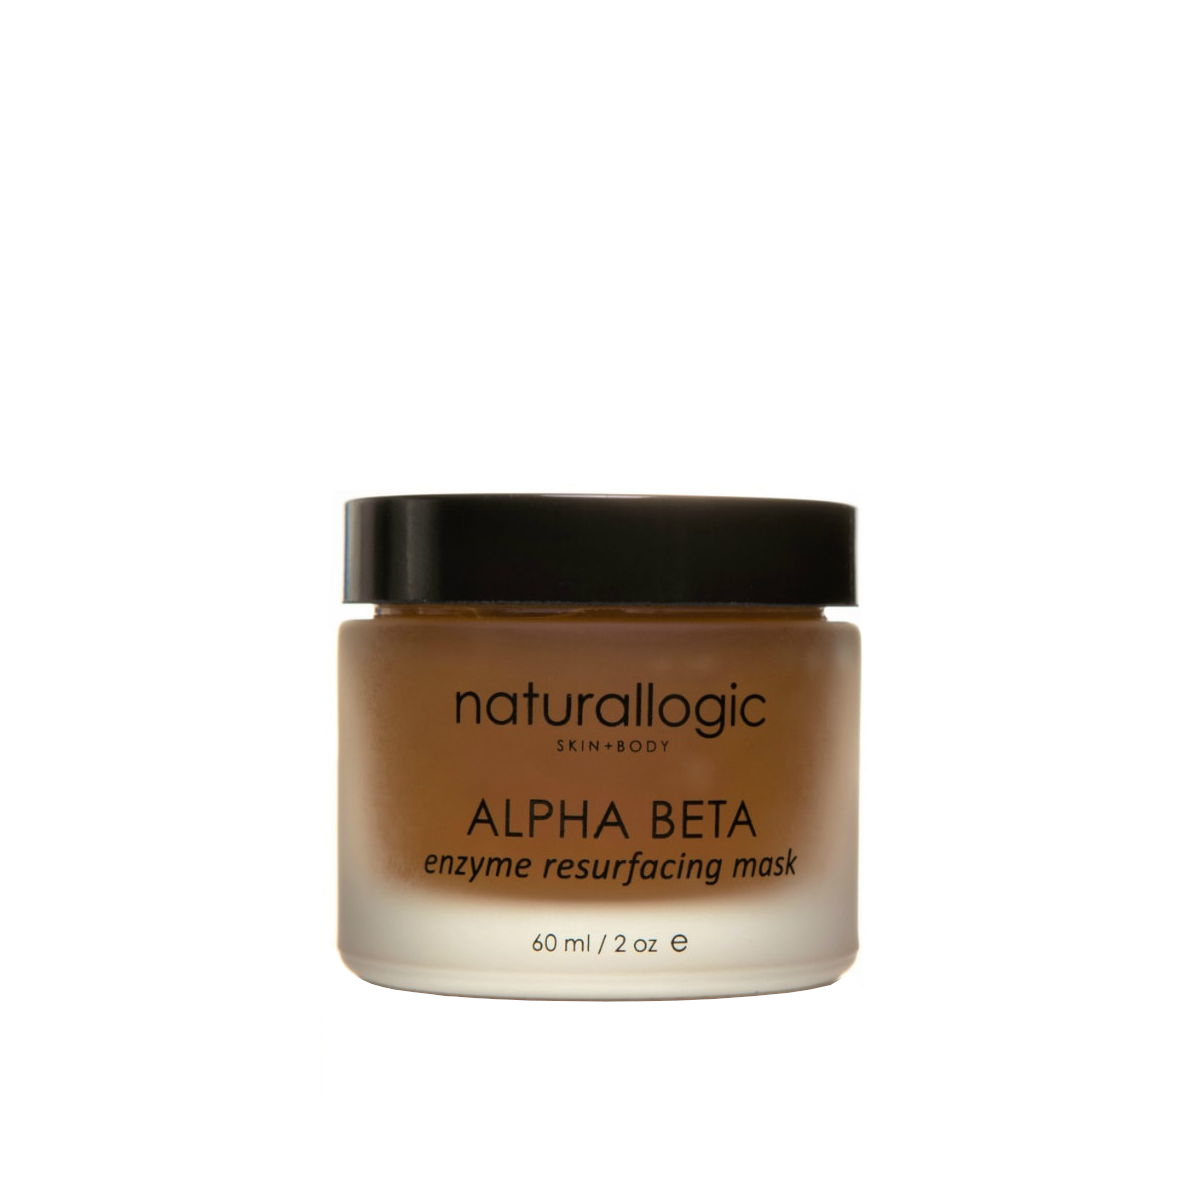 ALPHA BETA ENZYME RESURFACING MASK 60 ML